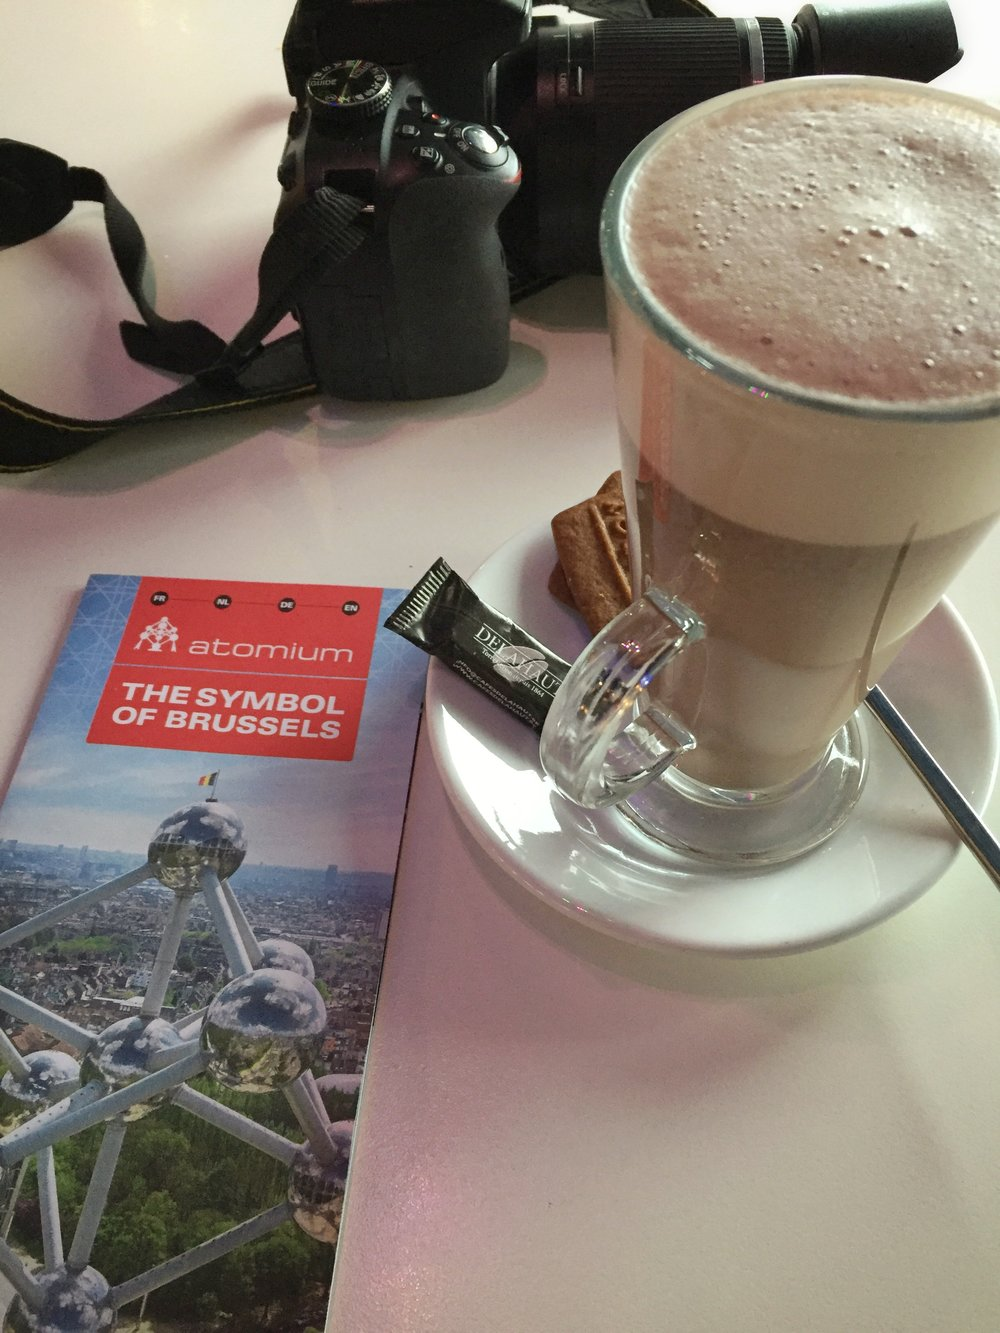 hot chocolate stop in the Atomium (Brussels)